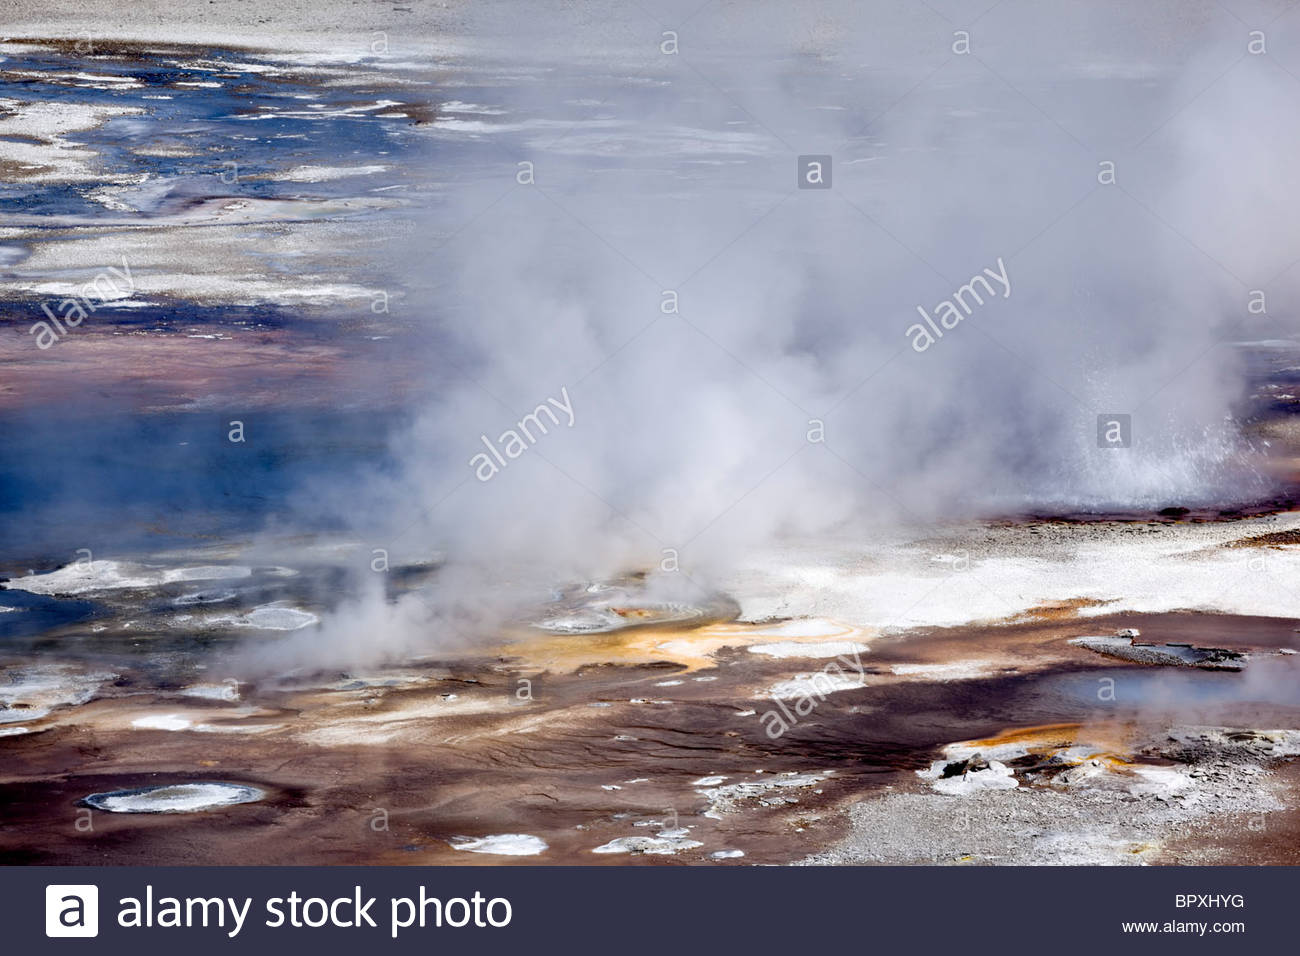 Whirligig Geysers at Norris Geyser Basin, Yellowstone National Park, Wyoming - Stock Image